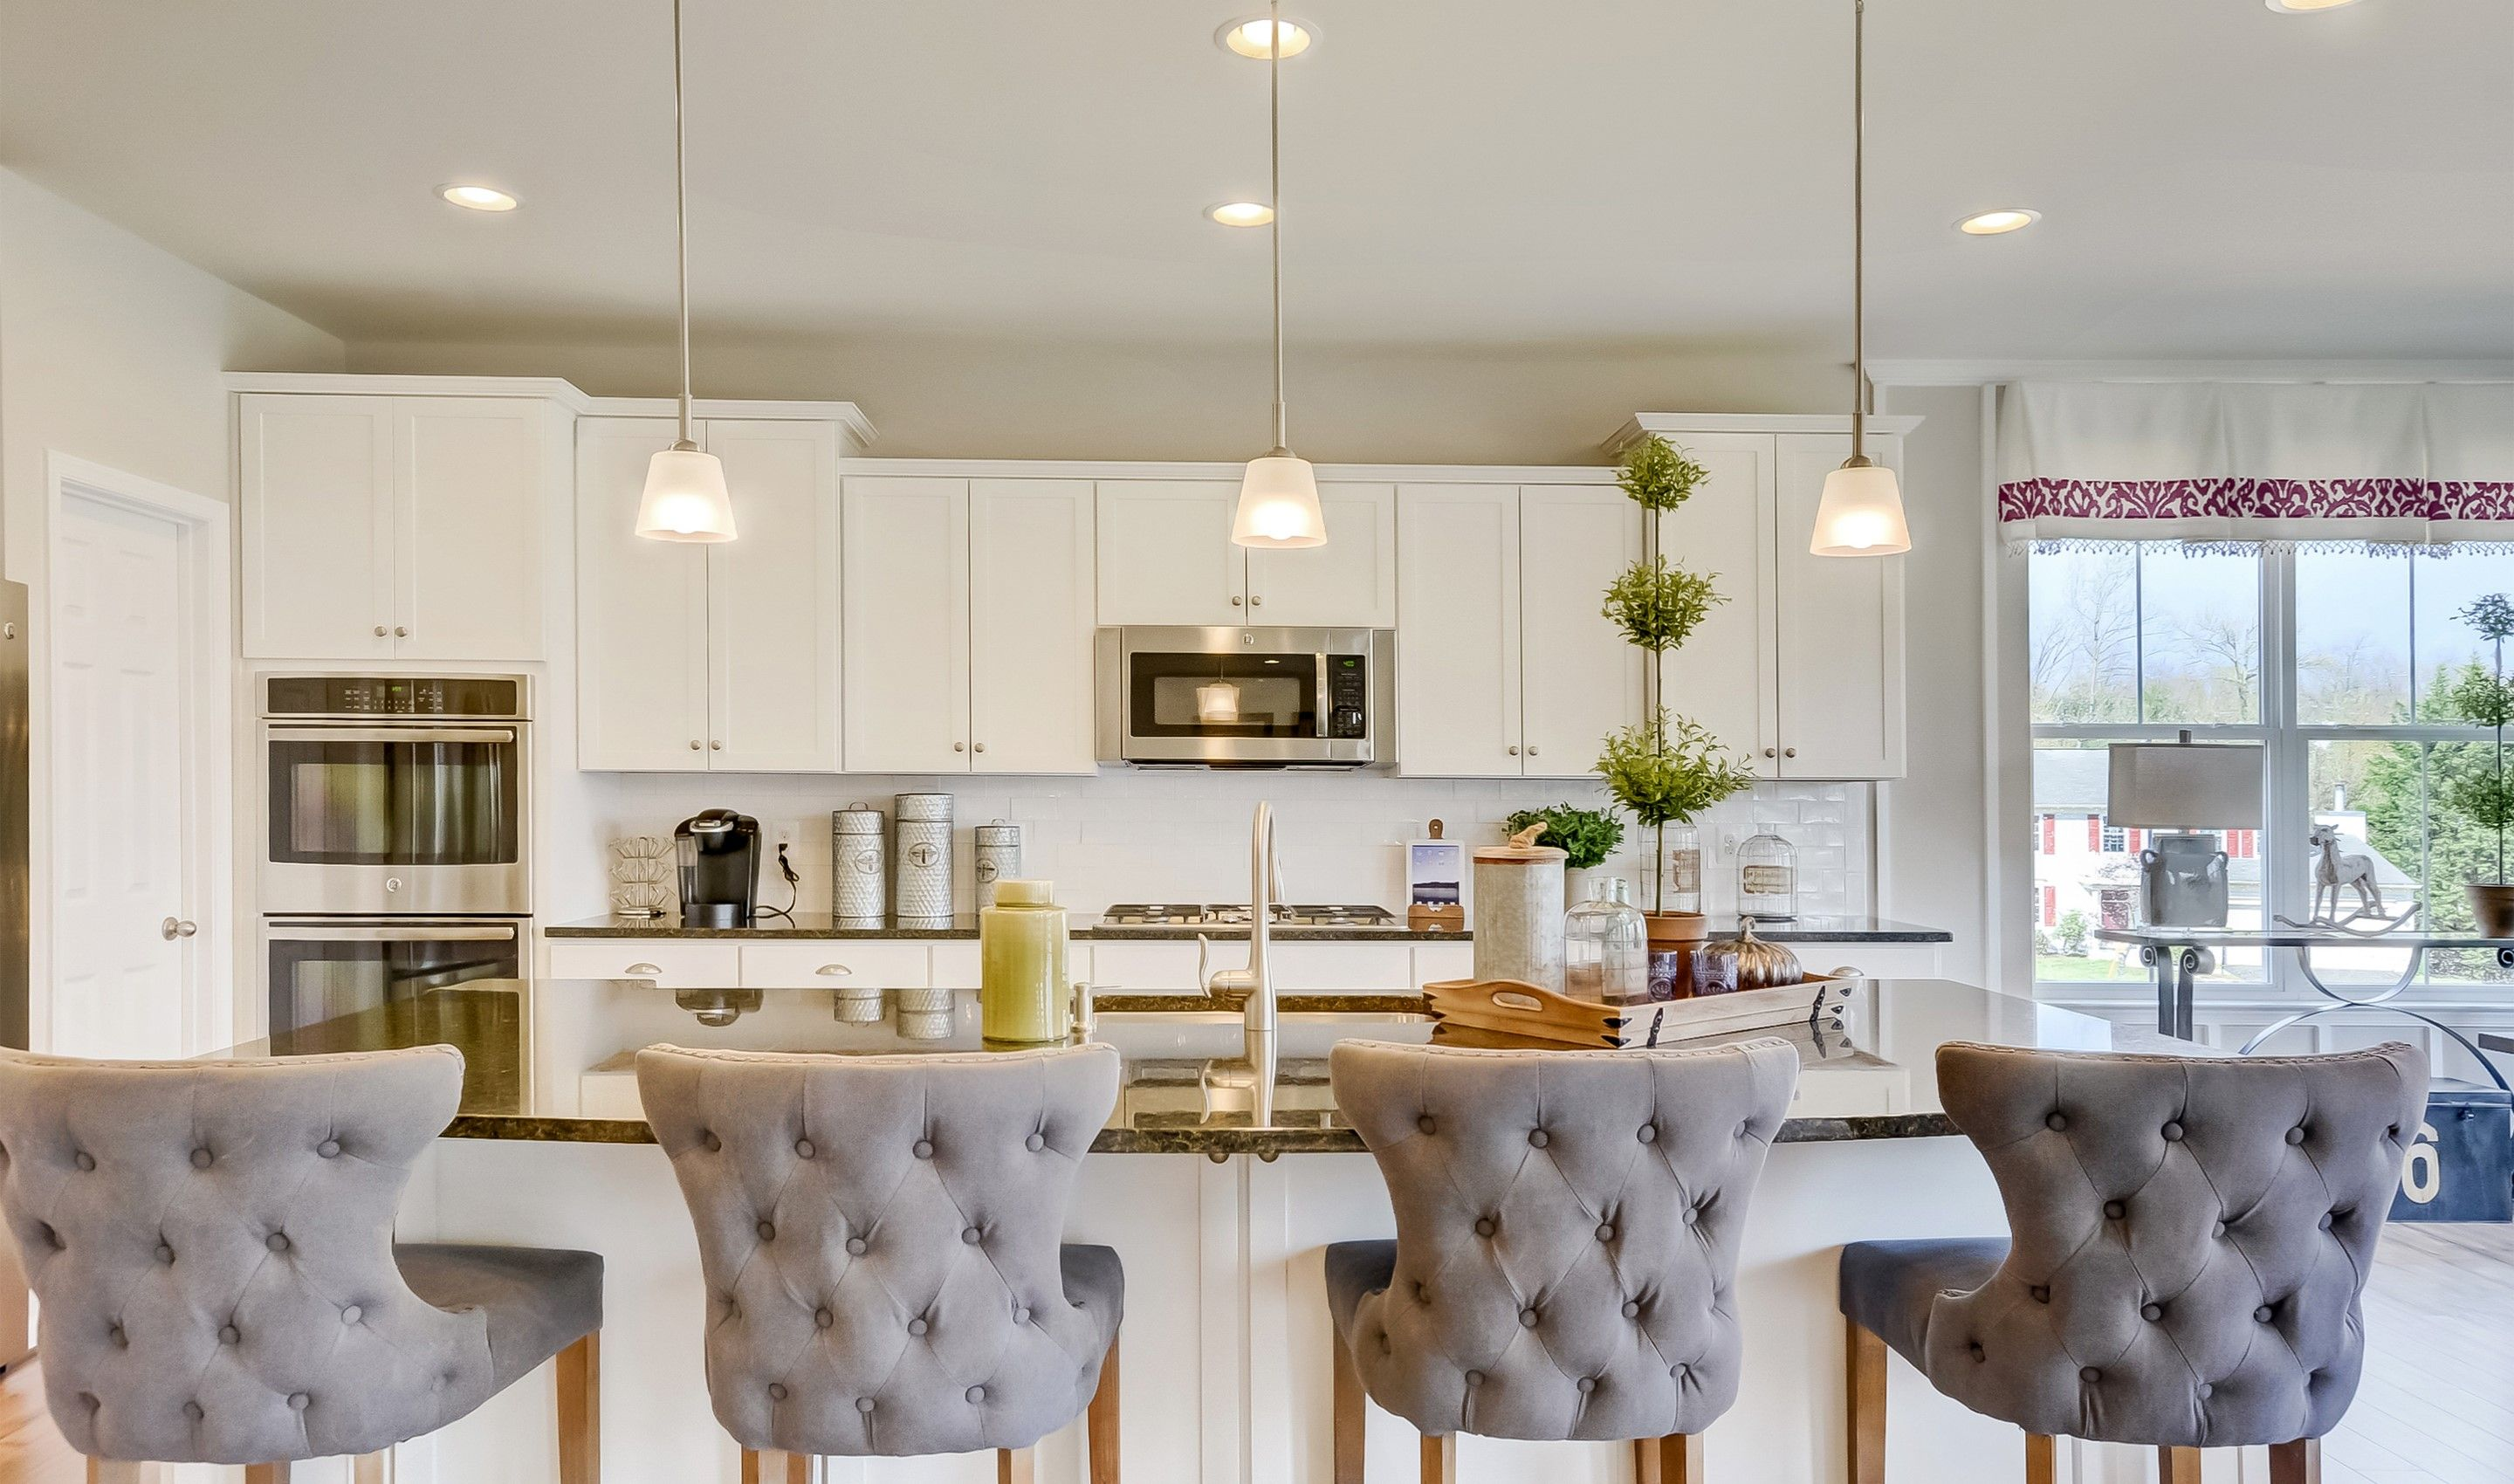 Kitchen featured in the Alaska II By K. Hovnanian® Homes in Washington, VA